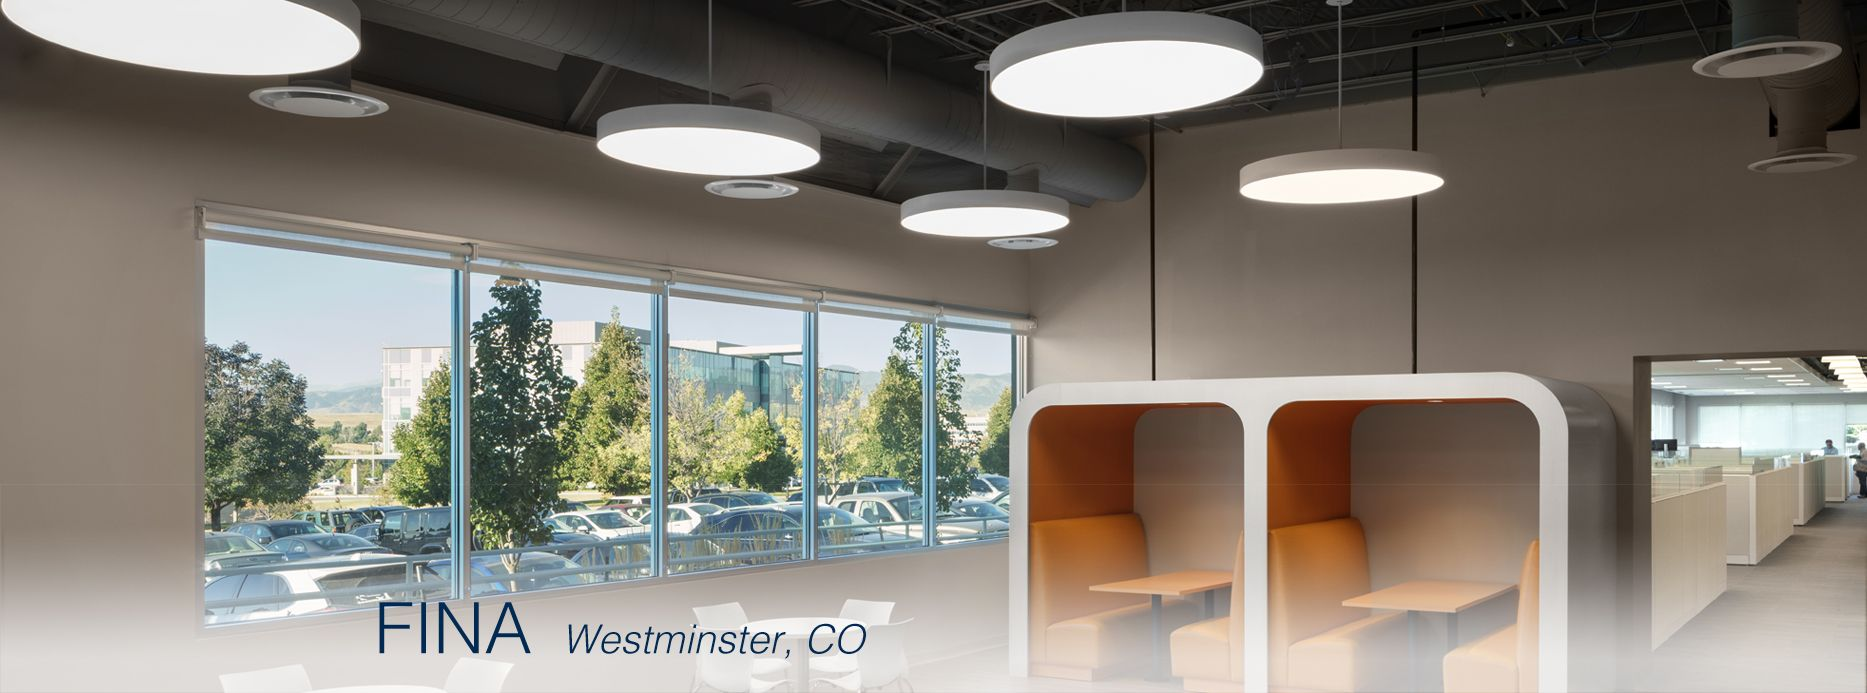 Exceptional Pinnacle Architectural Lighting | Commercial Lighting | Recessed Lighting |  Linear Lighting Awesome Design